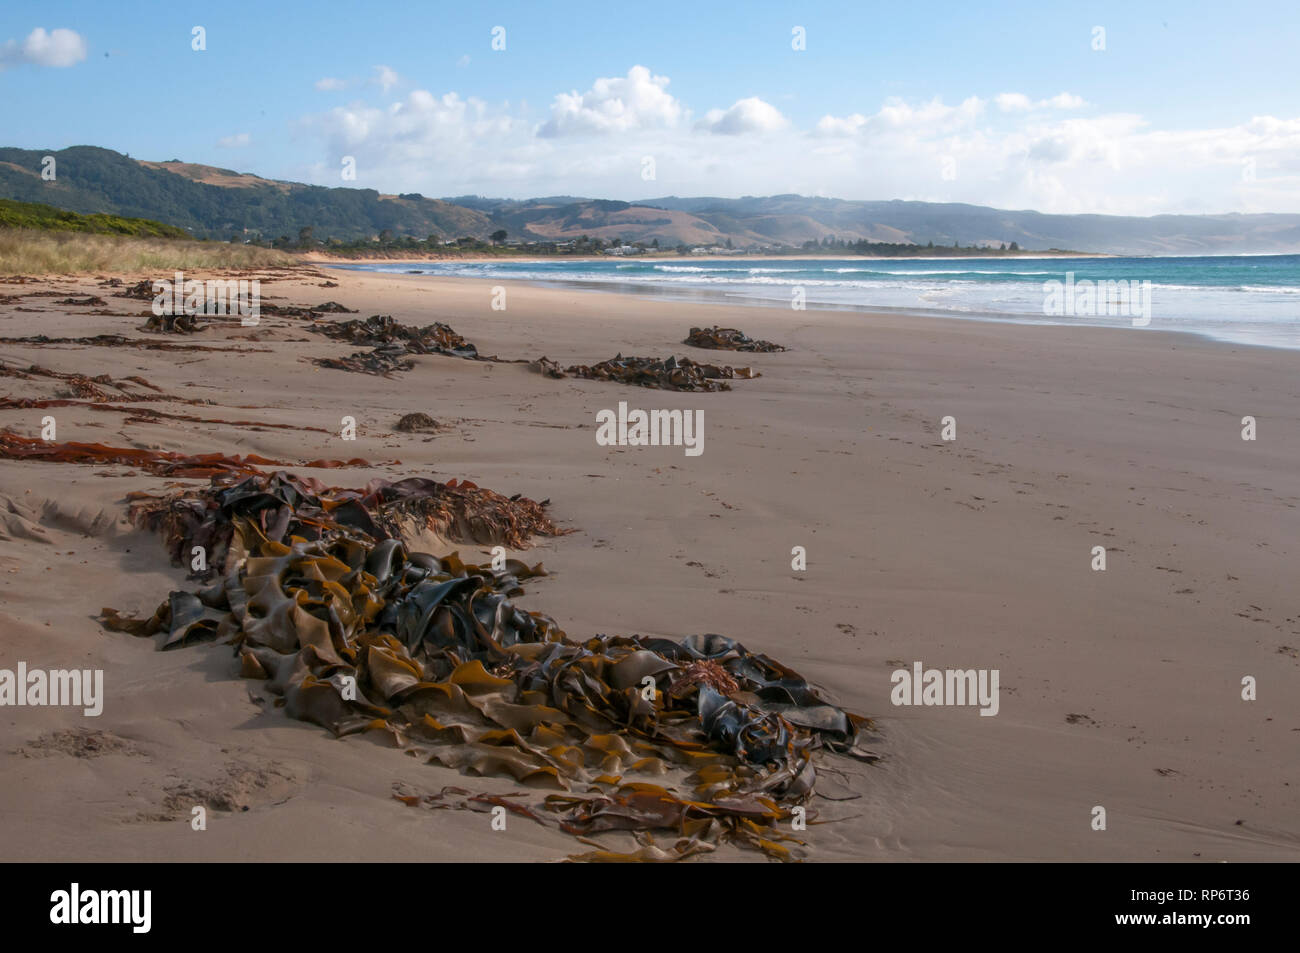 Kelp washed up on the ocean beach at Marengo, Great Ocean Road, Victoria, Australia Stock Photo